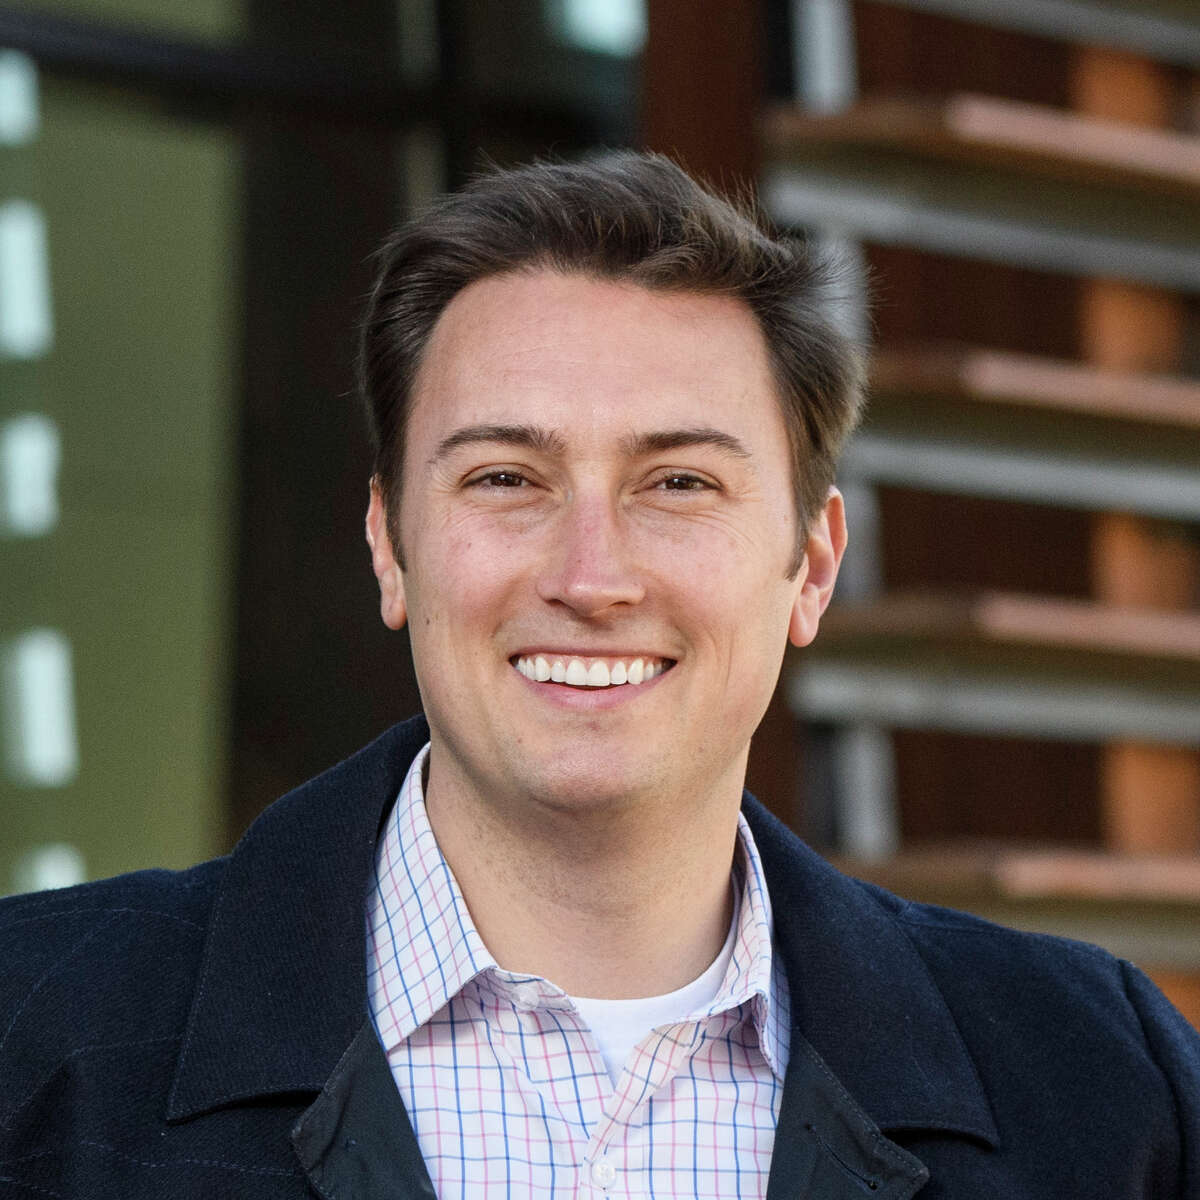 R.D. Huffstetler is running for the Democratic nomination in Virginia's 5th District.